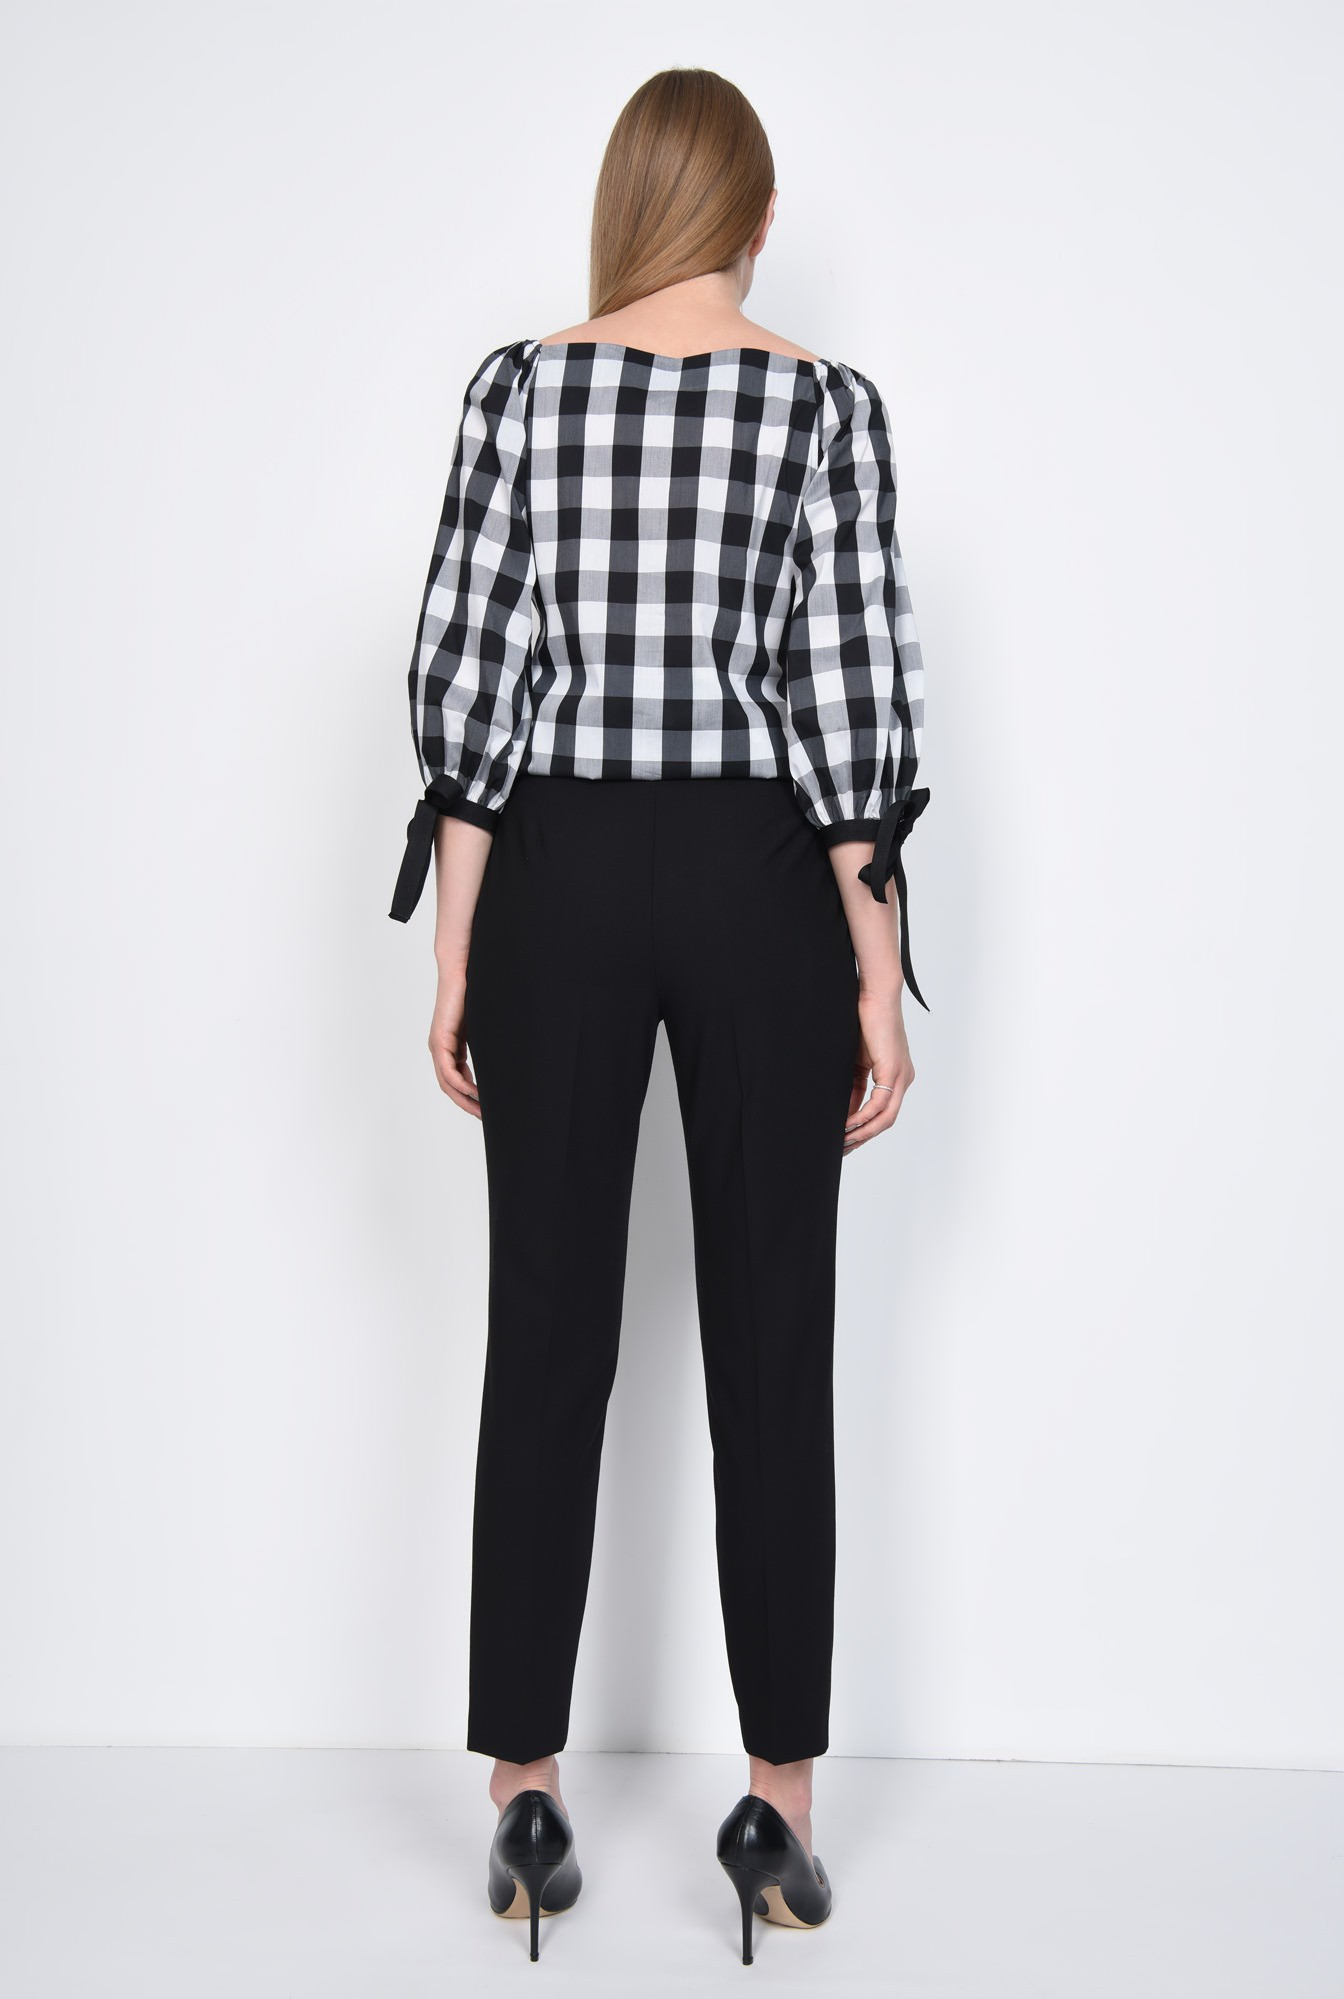 0 - PANTALON OFFICE PT 160-NEGRU